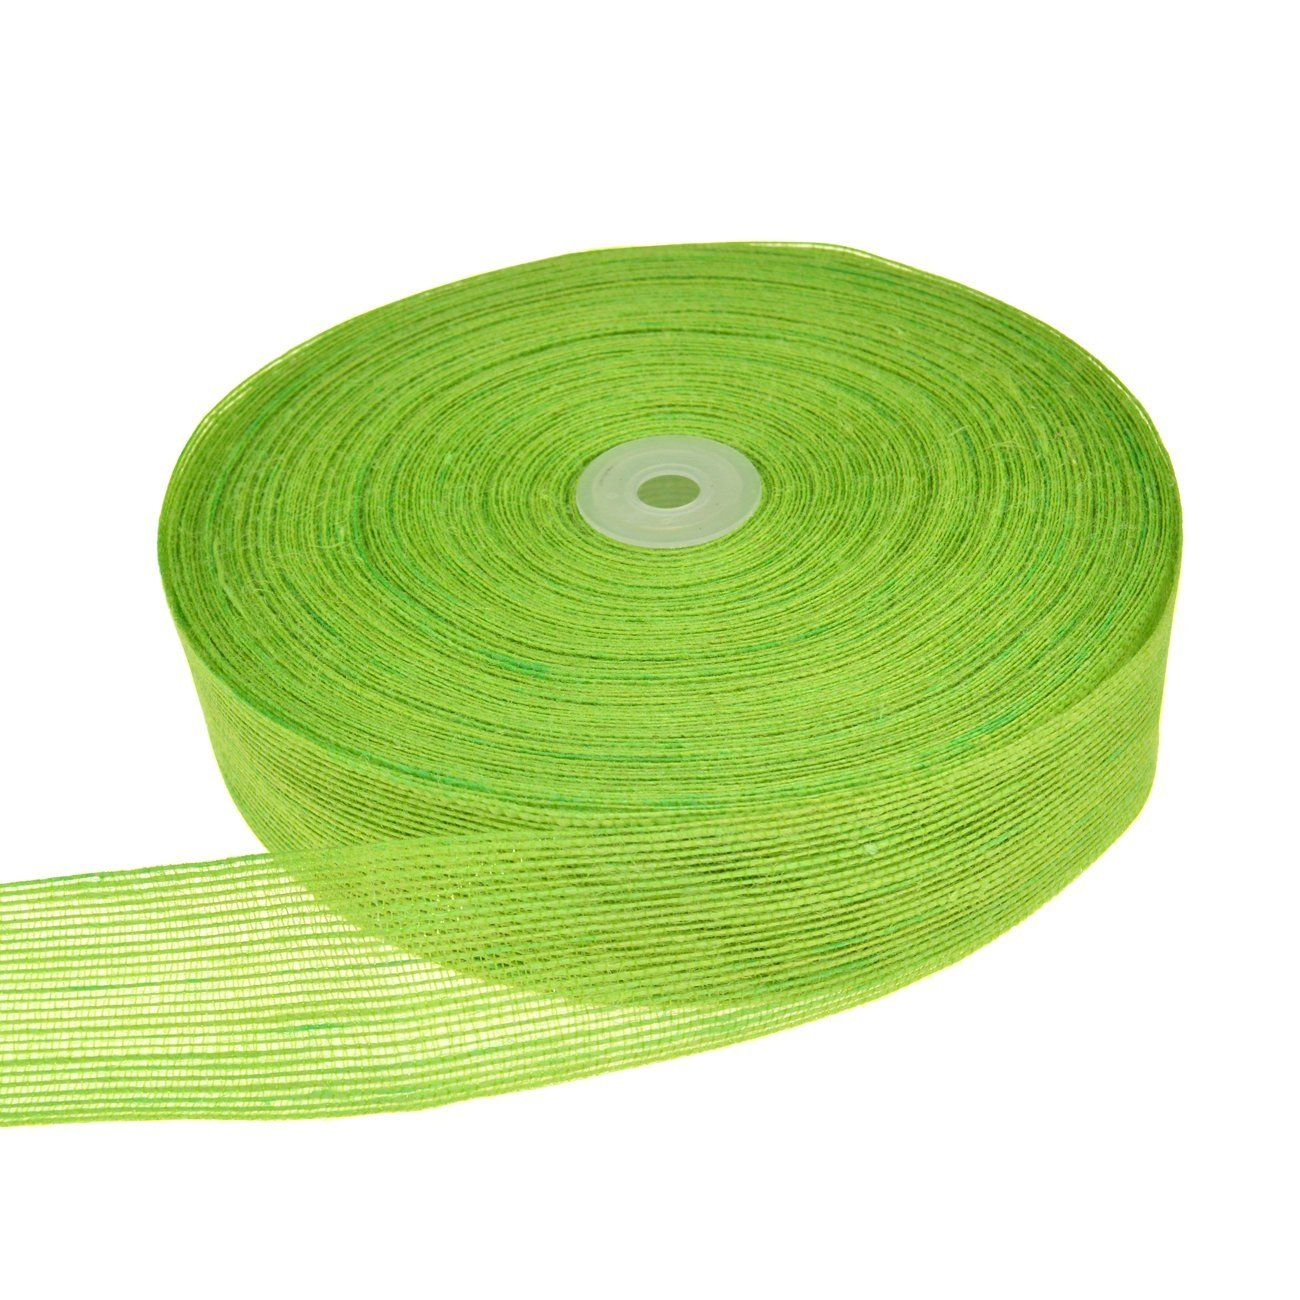 Solid Color Burlap Ribbon Roll Fabric For Wedding Party Home Diy Decoration Gross Green 1 7 8 Wide By 10 Yards You Can Diy Decor Burlap Ribbon Home Diy